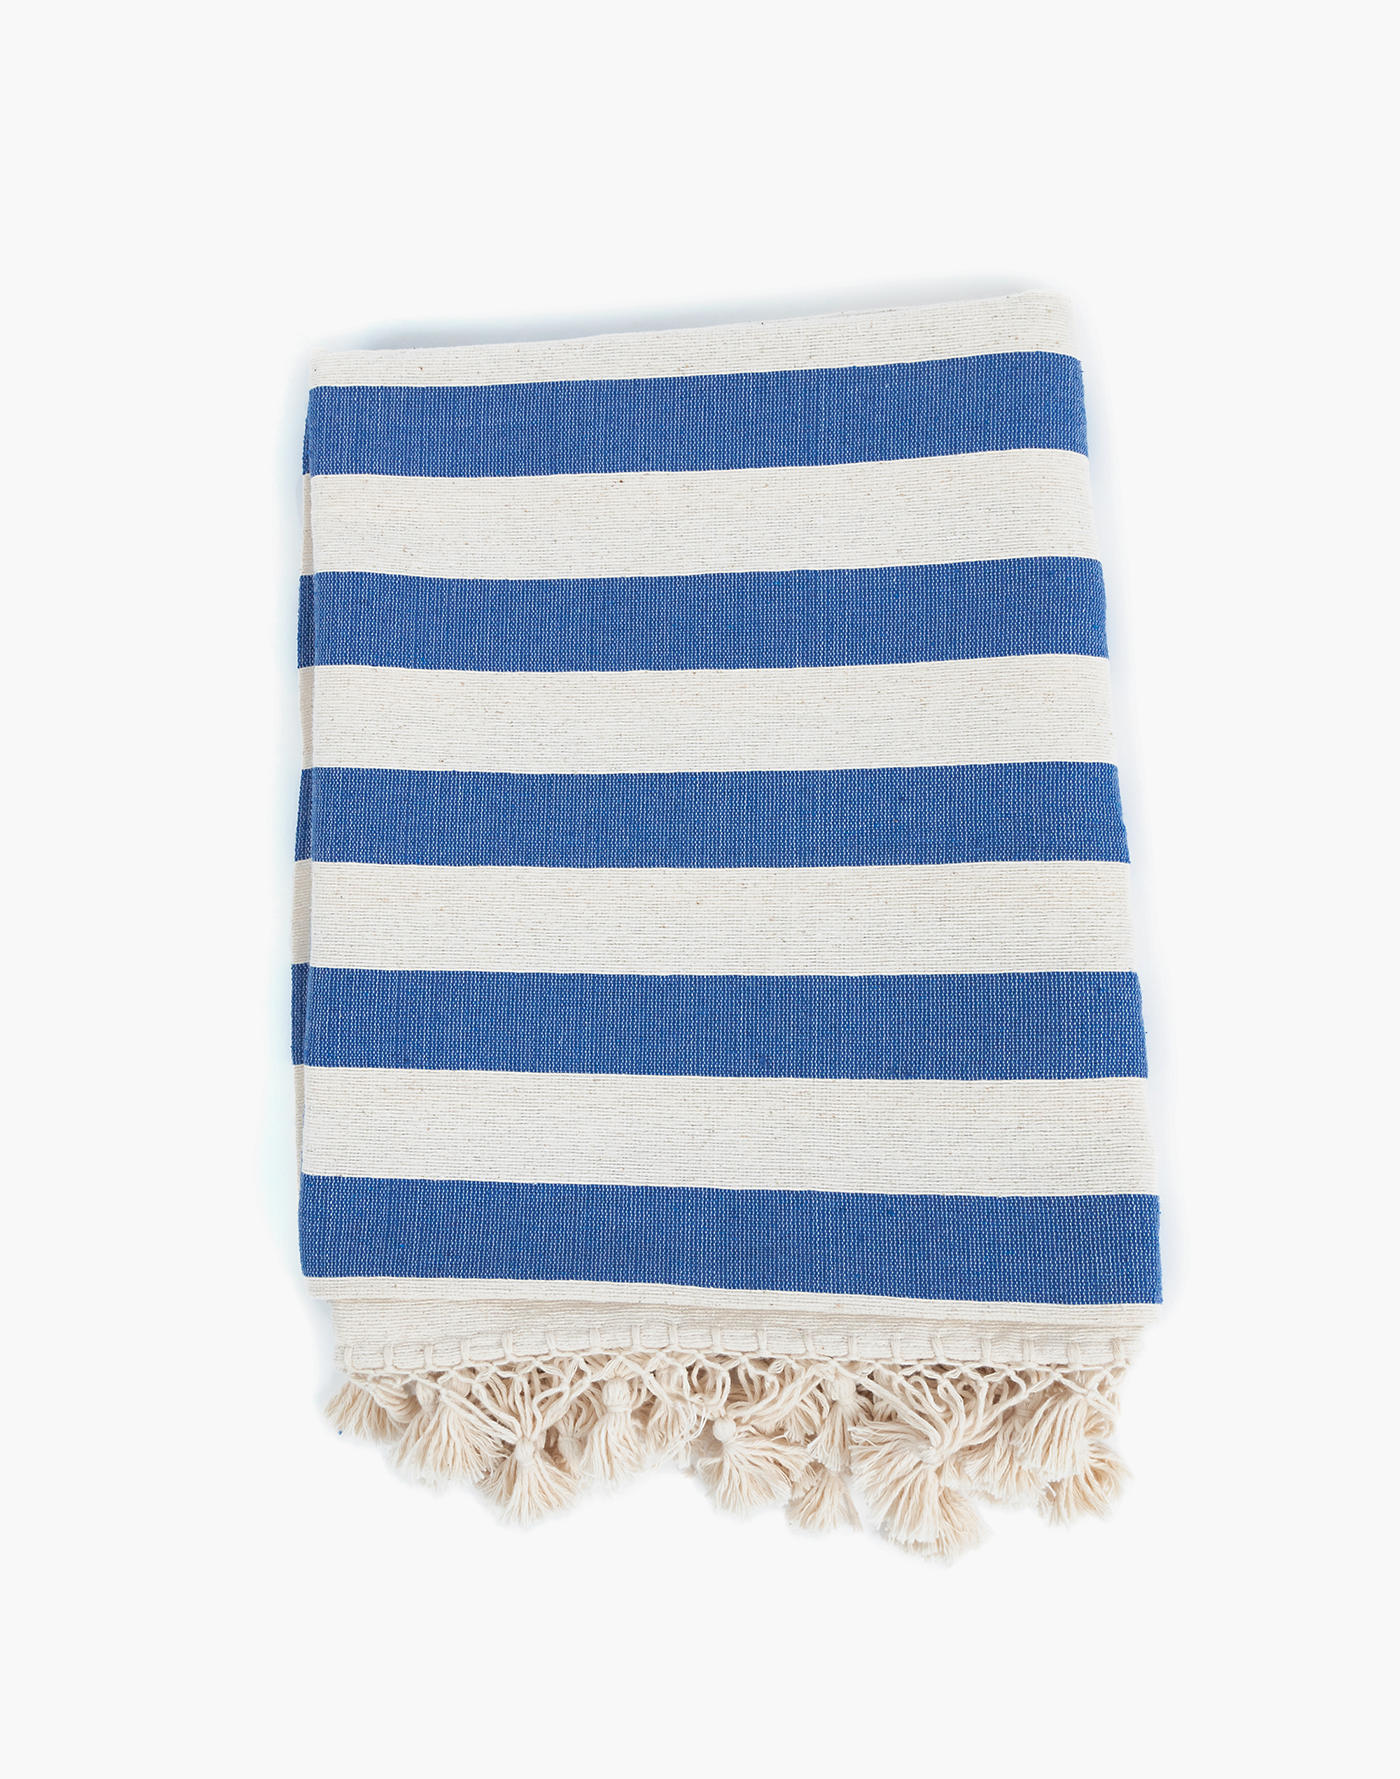 Madewell Nativa Throw in Royal Blue